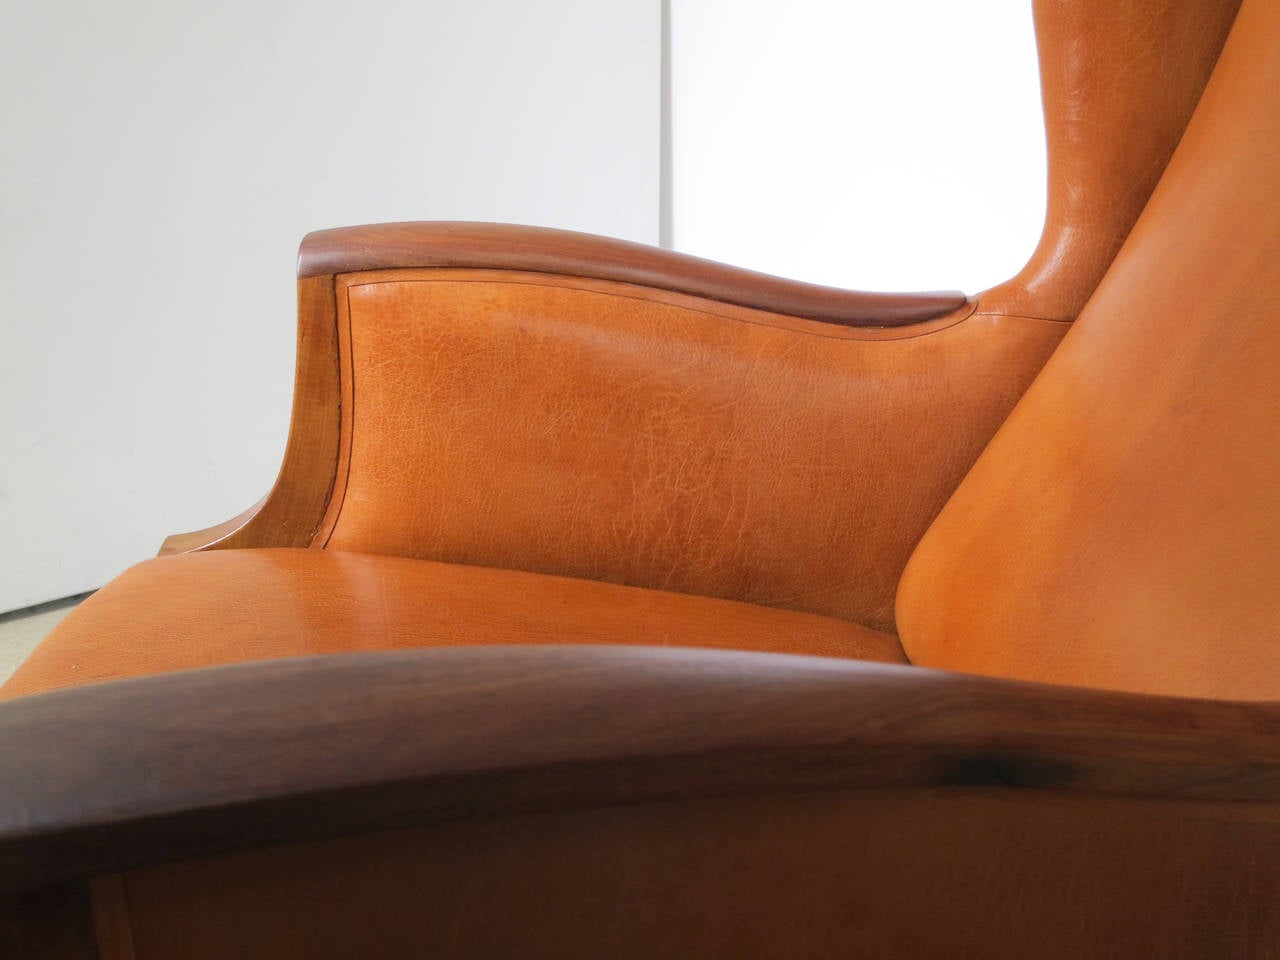 1930s Wingback Chair in Nigerian Leather and Cuban Mahogany by Frits Henningsen In Excellent Condition For Sale In New York, NY